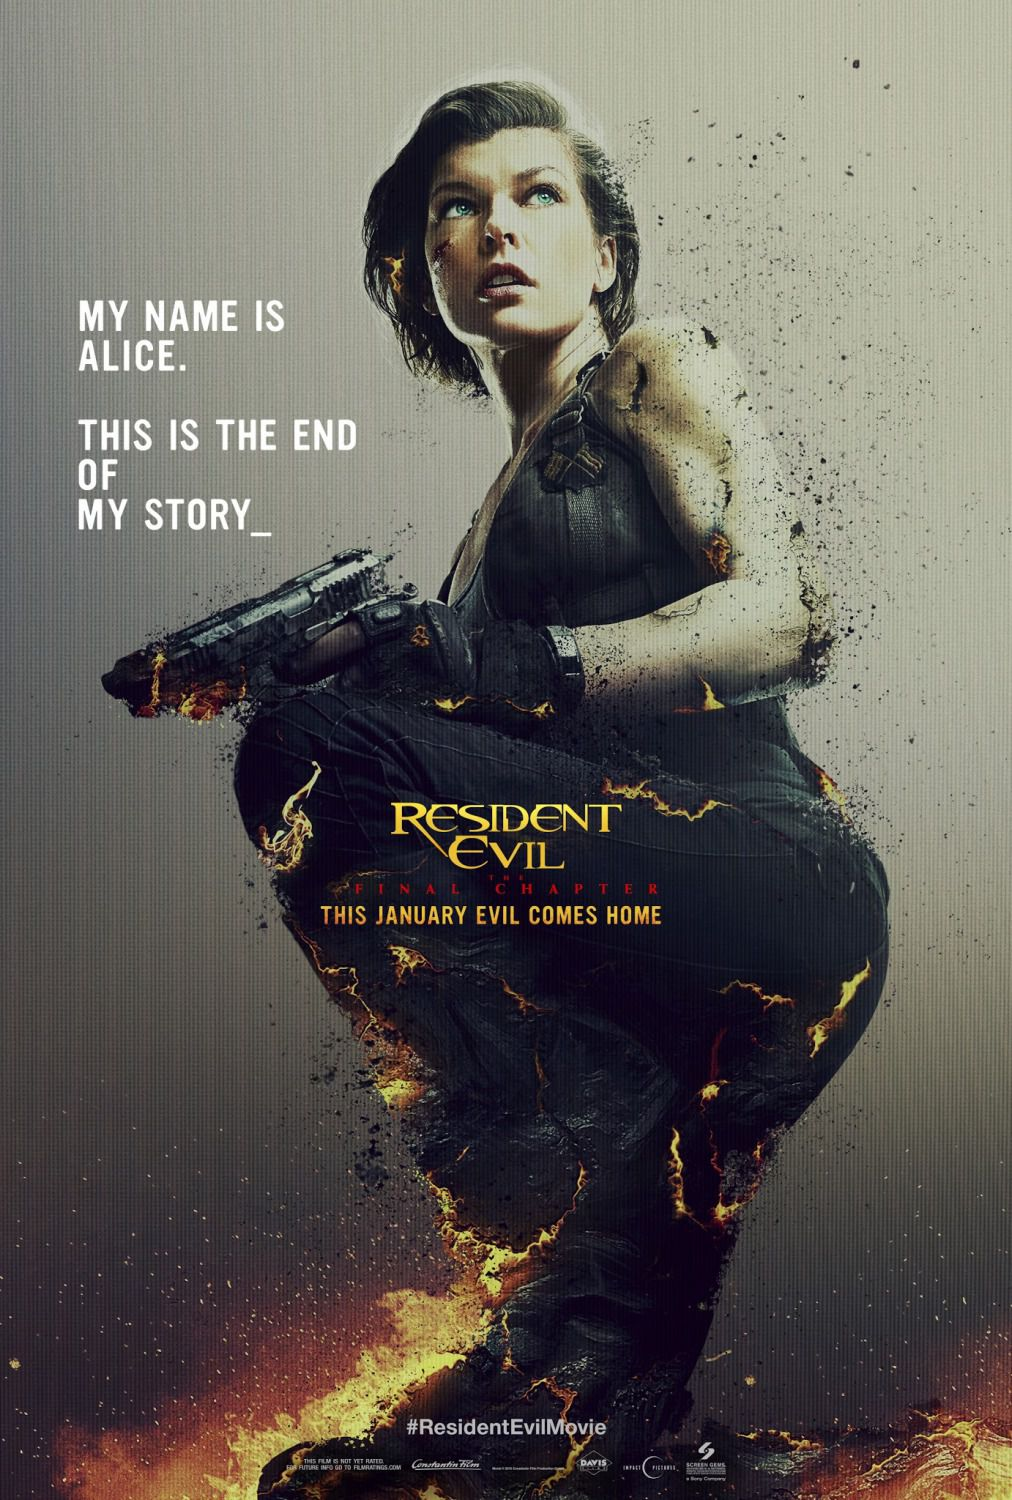 Resident Evil 6 - The Final Chapter (2016) - Milla Jovovich